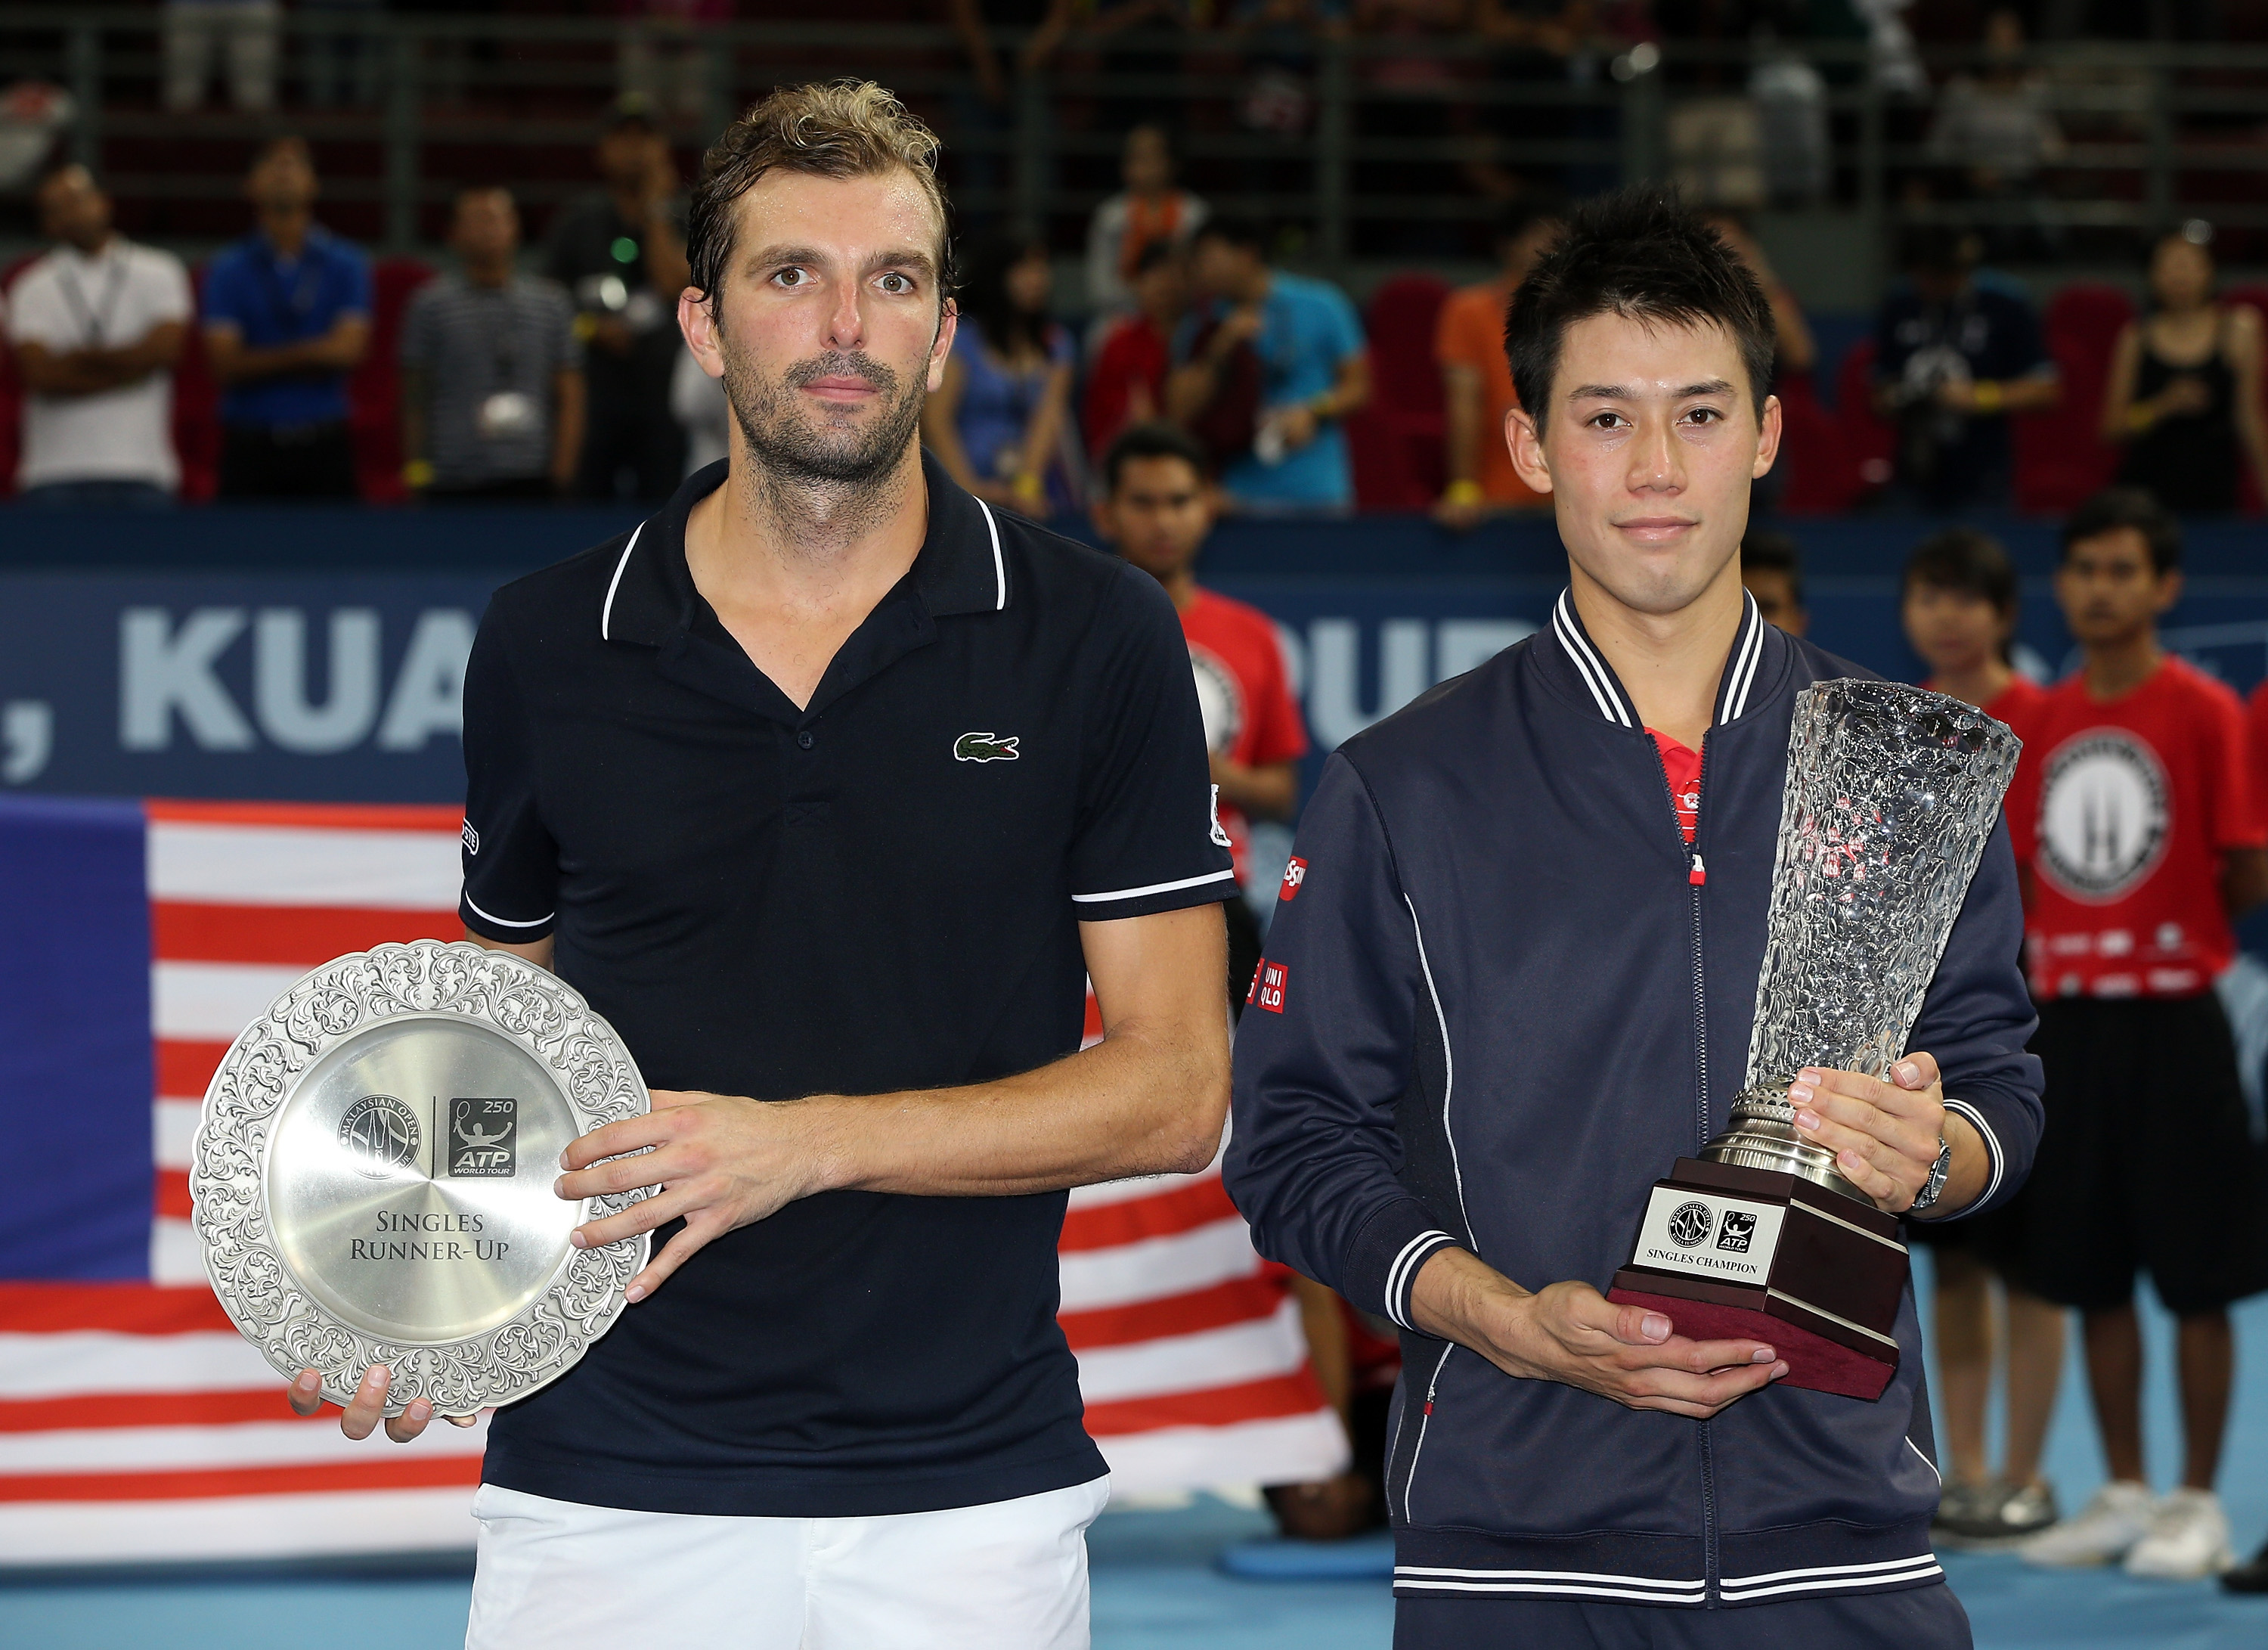 Kei Nishikori defeated Julien Benneteau in Kuala Lumpur for his third title of the season.